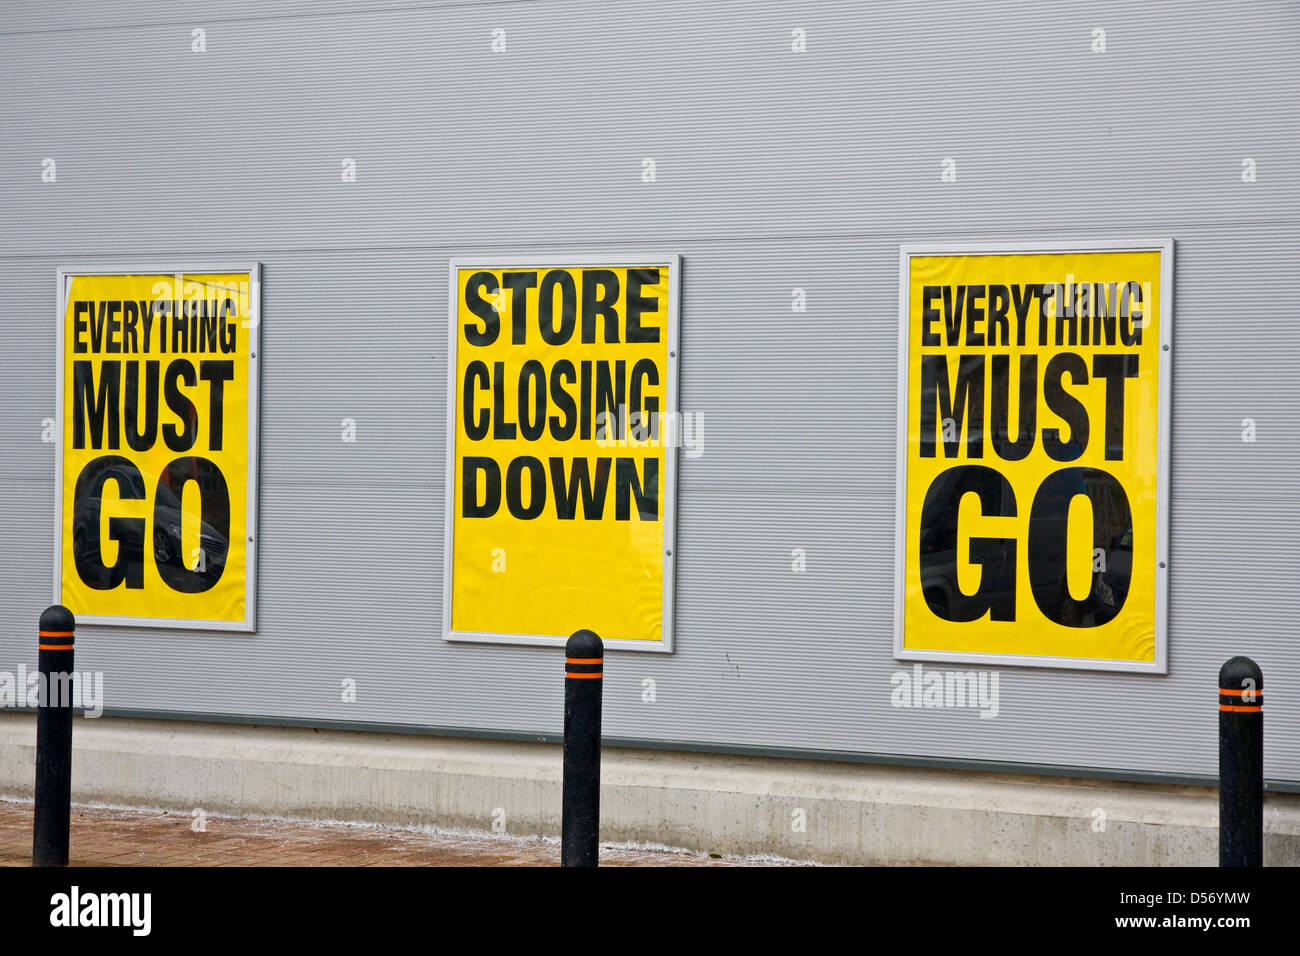 Signs outside store which was closing down - Stock Image